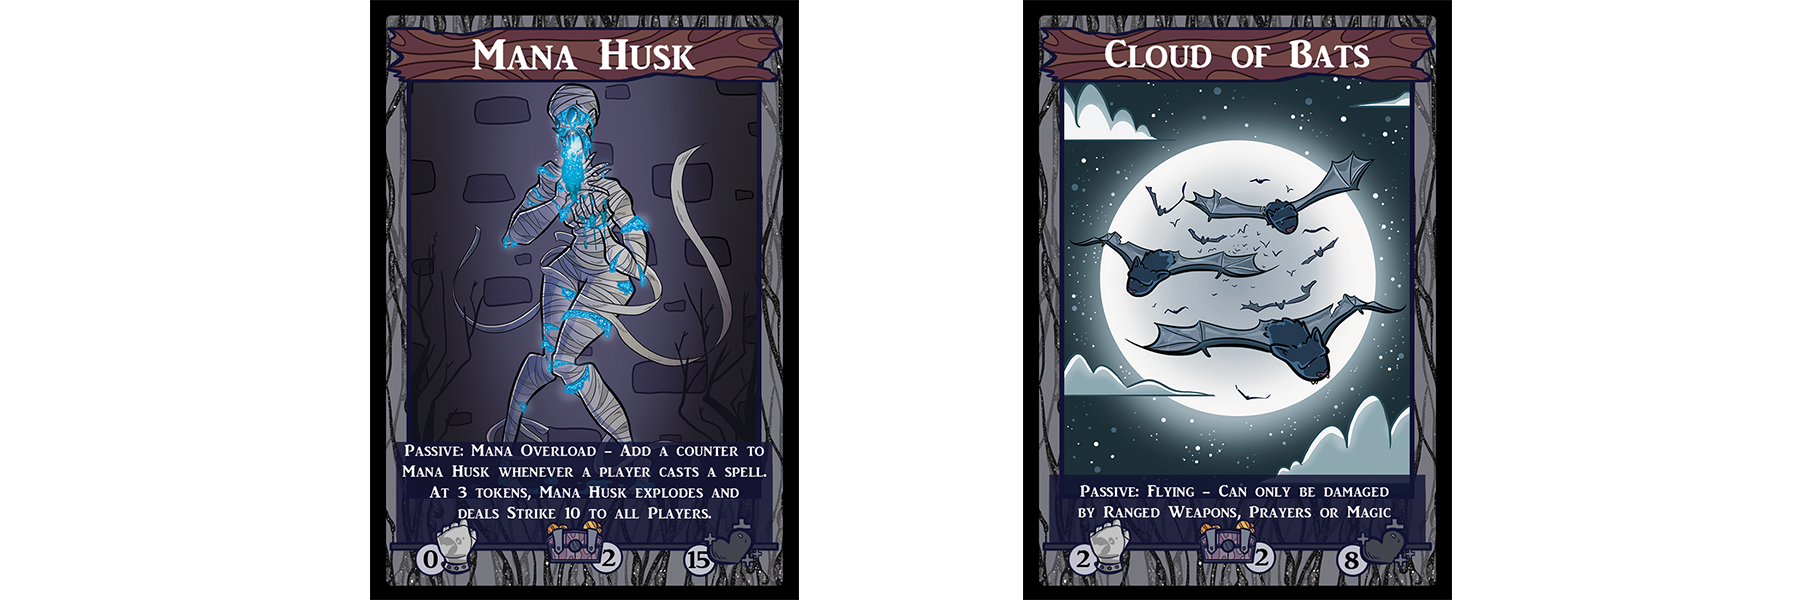 The basic monsters Mana Husk and Cloud of Bats. Mana Husk's passive card text means every time a spell is cast a counter must be placed on the card. Once three tokens are applied, the Husk explodes and deals Strike damage to all players. Cloud of Bats instead simply cannot be damaged by melee weapons, as they are flying out of range.